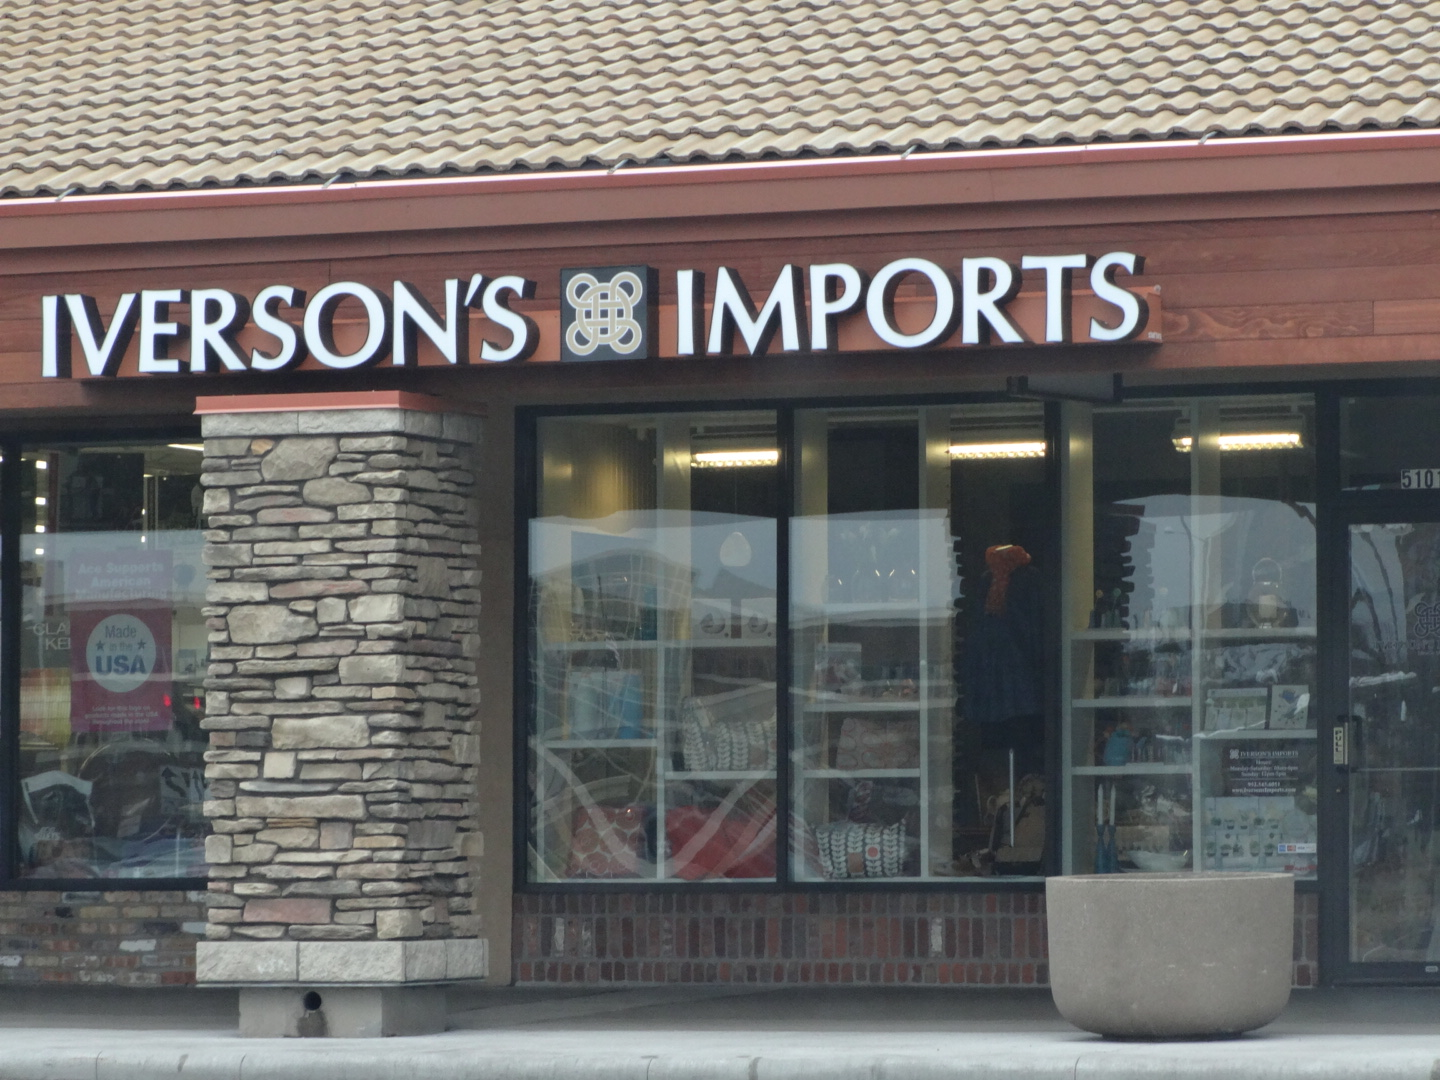 Iversons Imports